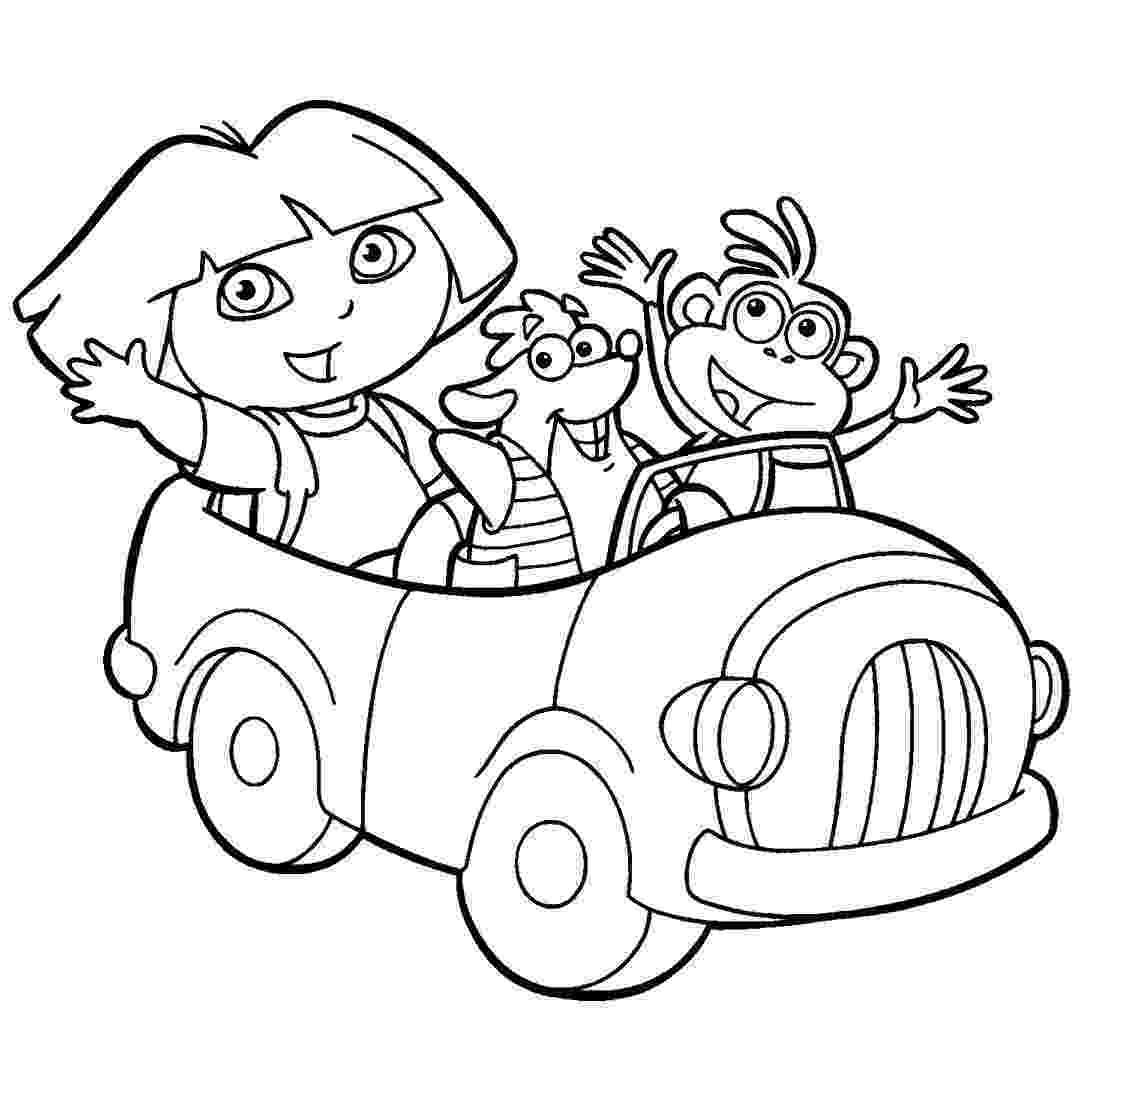 colouring pages dora free printable dora the explorer coloring pages for kids colouring pages dora